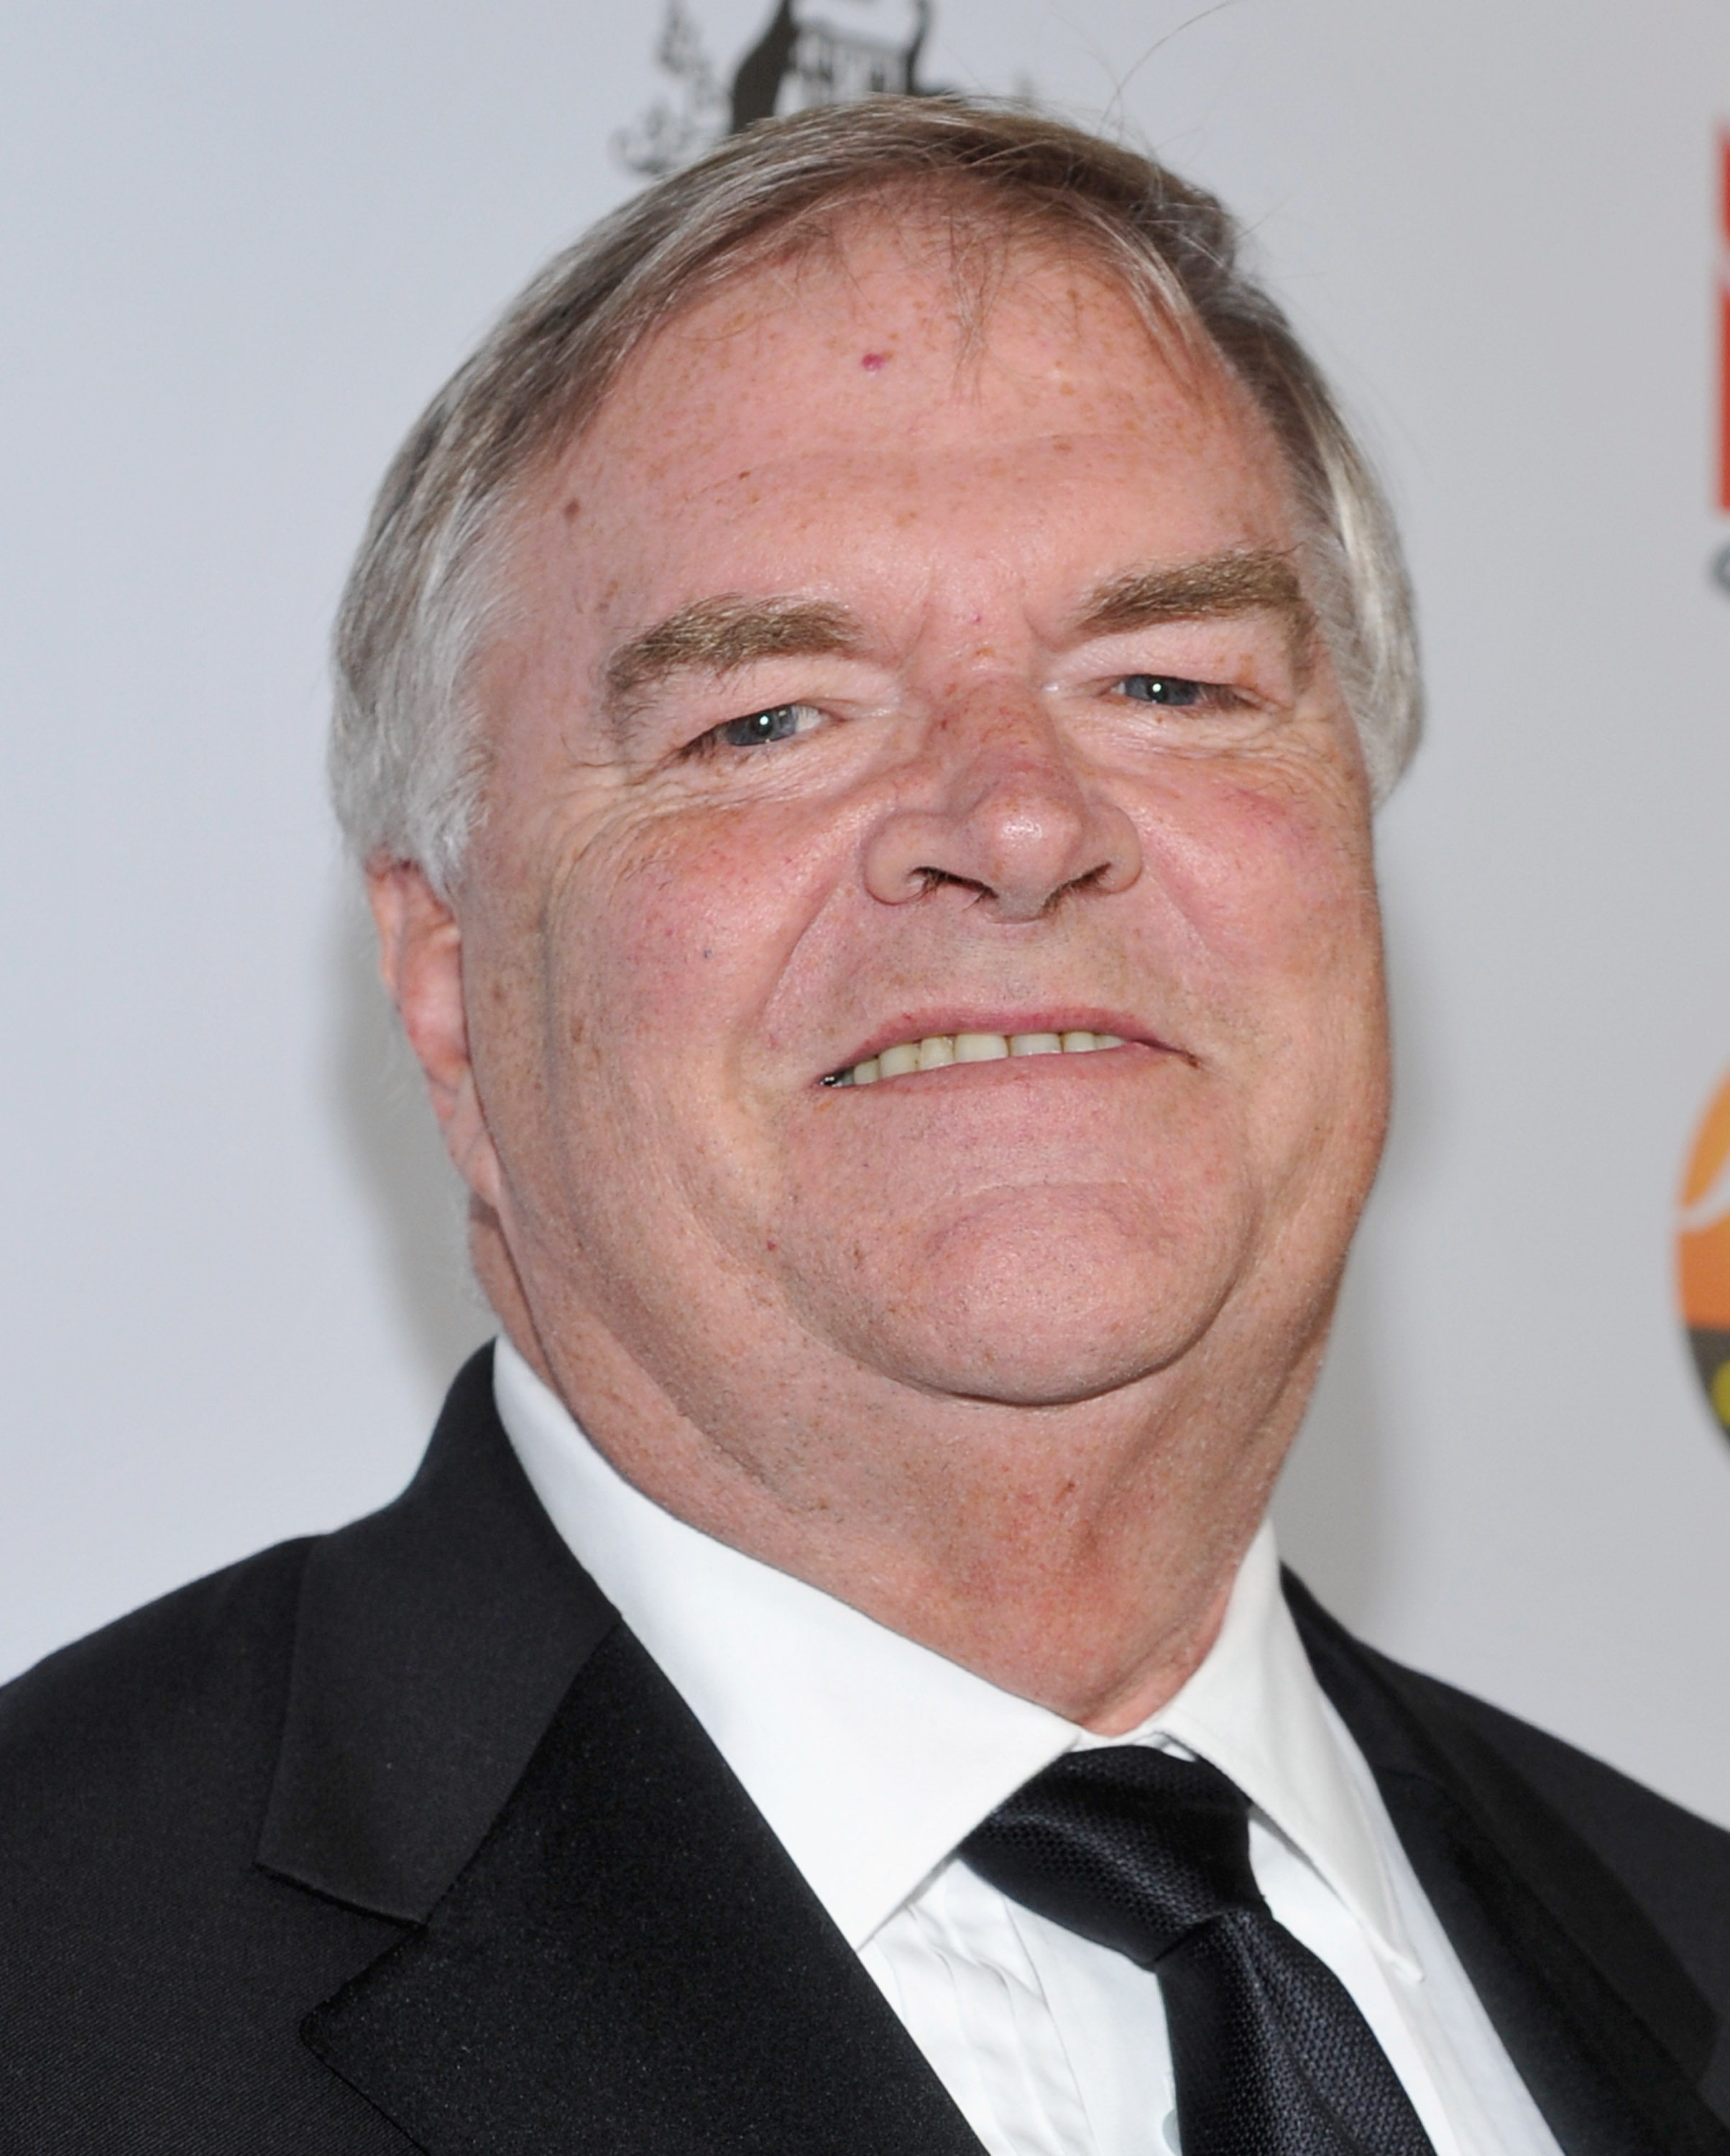 Kim Beazley. Picture: Getty Images